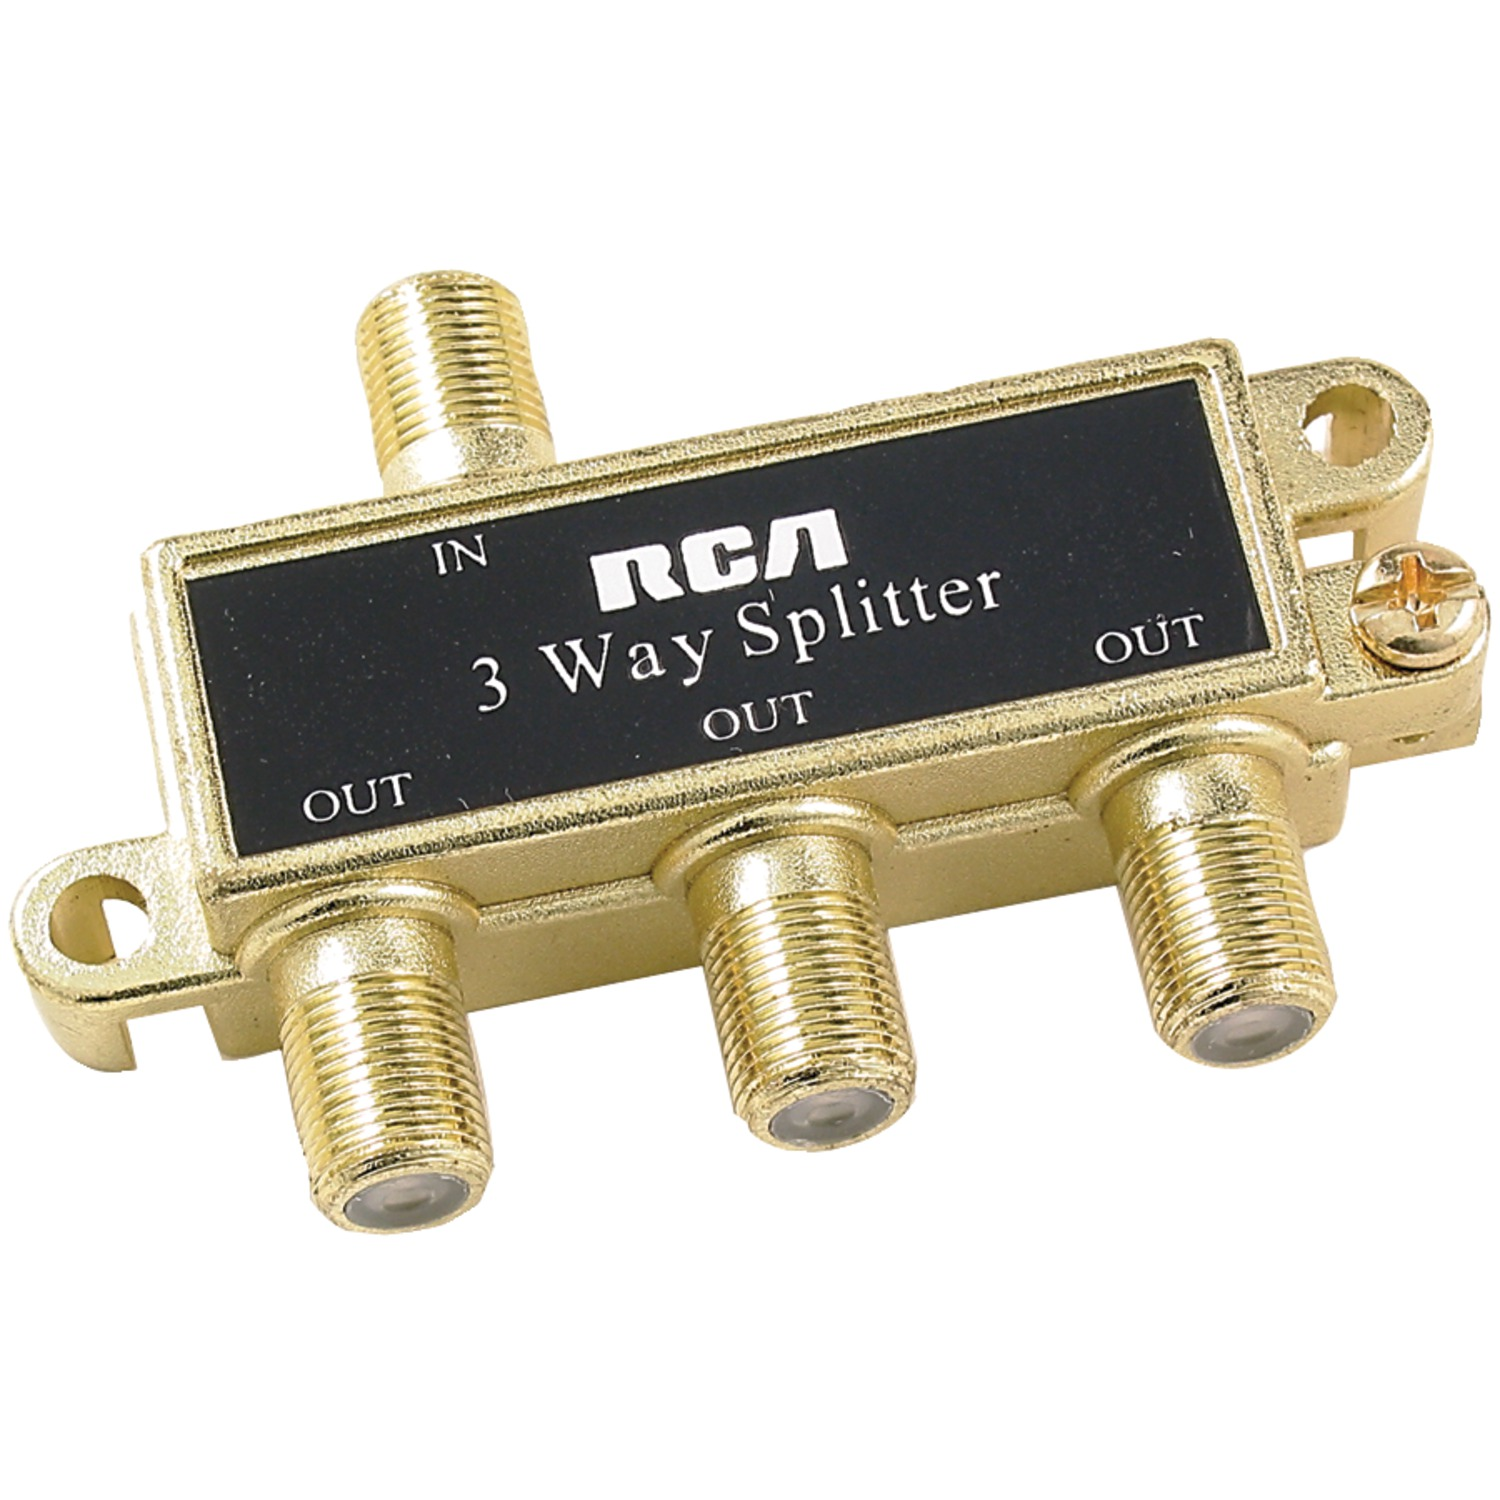 Rca Vh48n 3 Way Splitter Trouble With Tv Using Vcr And Cable